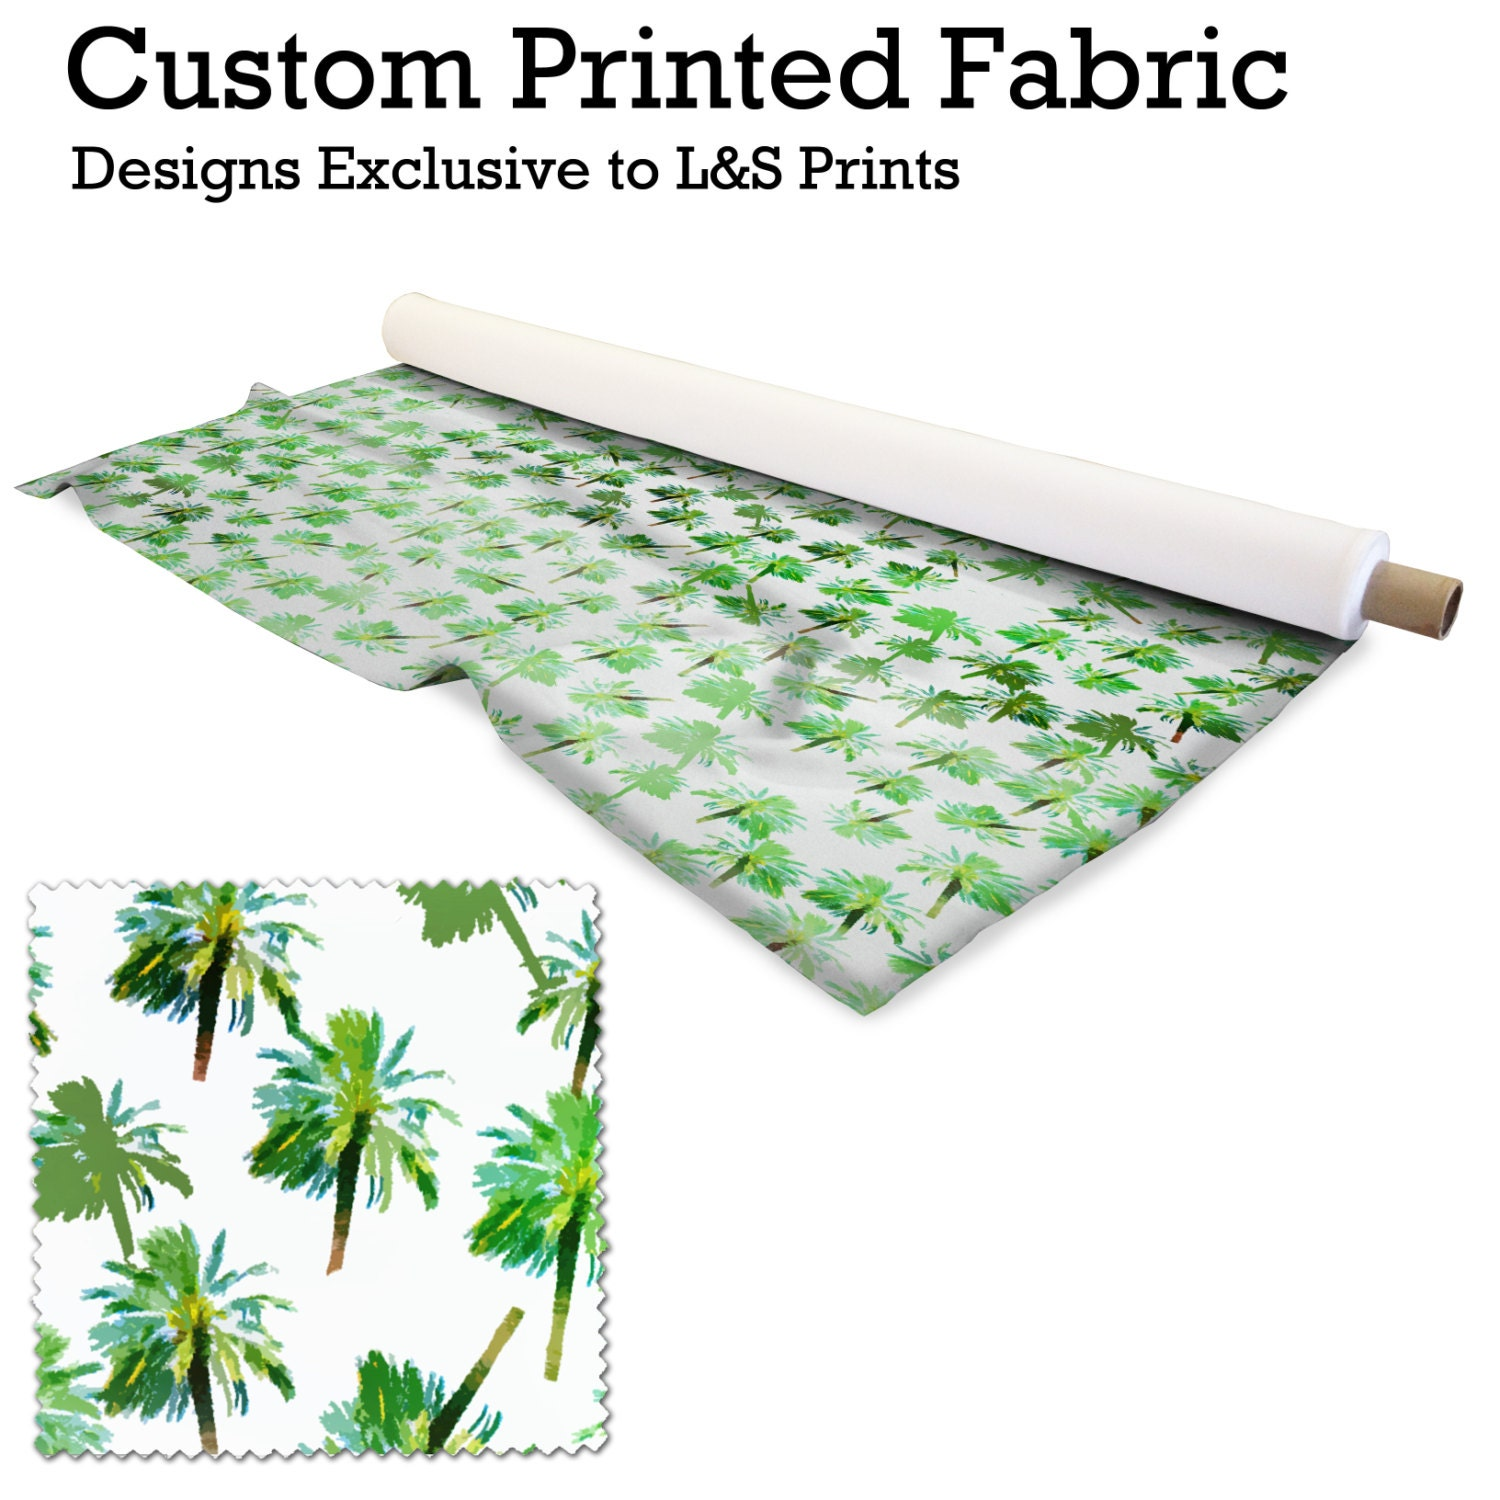 painted palm tree design fabric 2 way stretch lycra spandex satin chiffon jersey voile. Black Bedroom Furniture Sets. Home Design Ideas